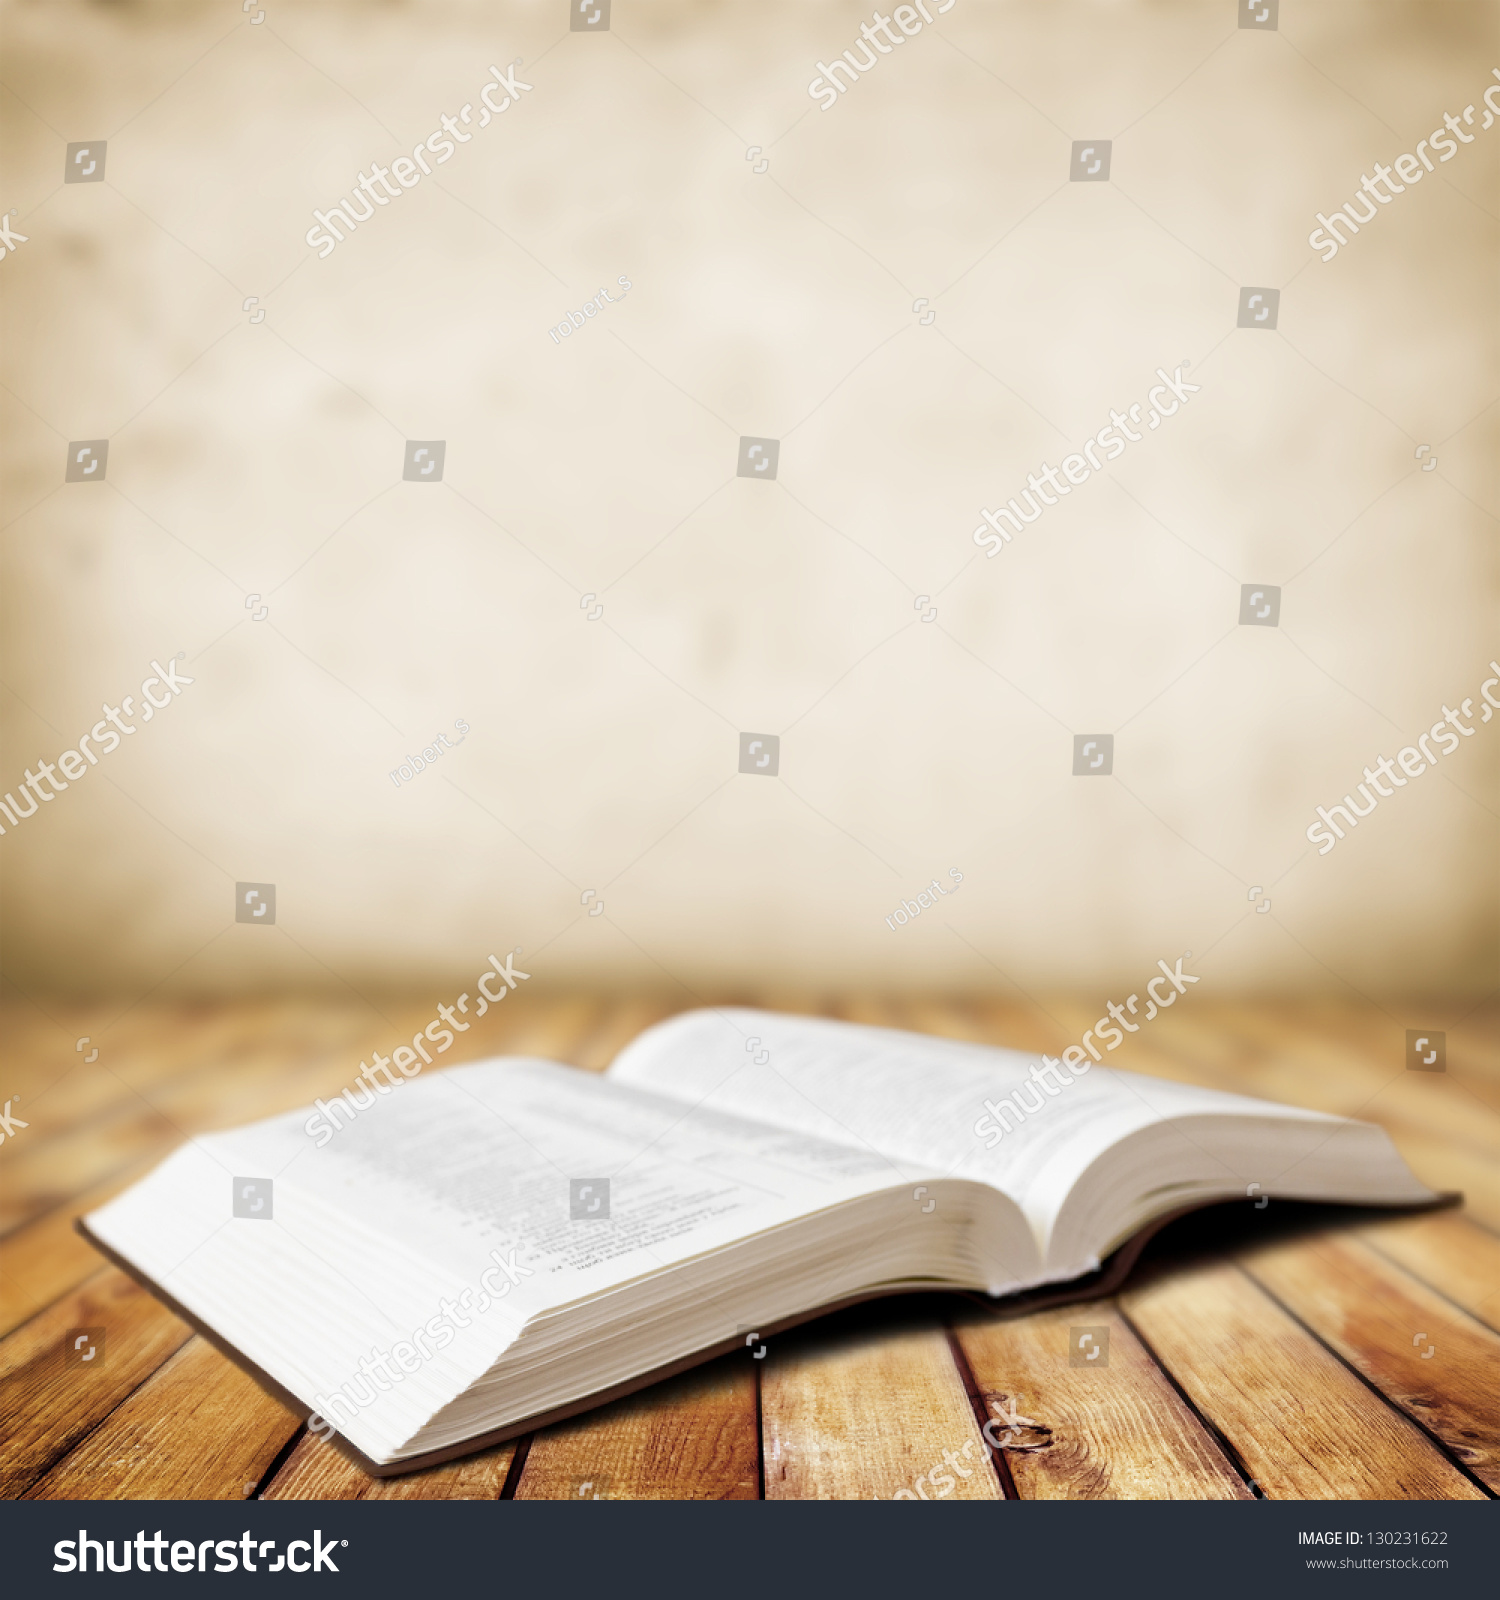 open book backgrounds